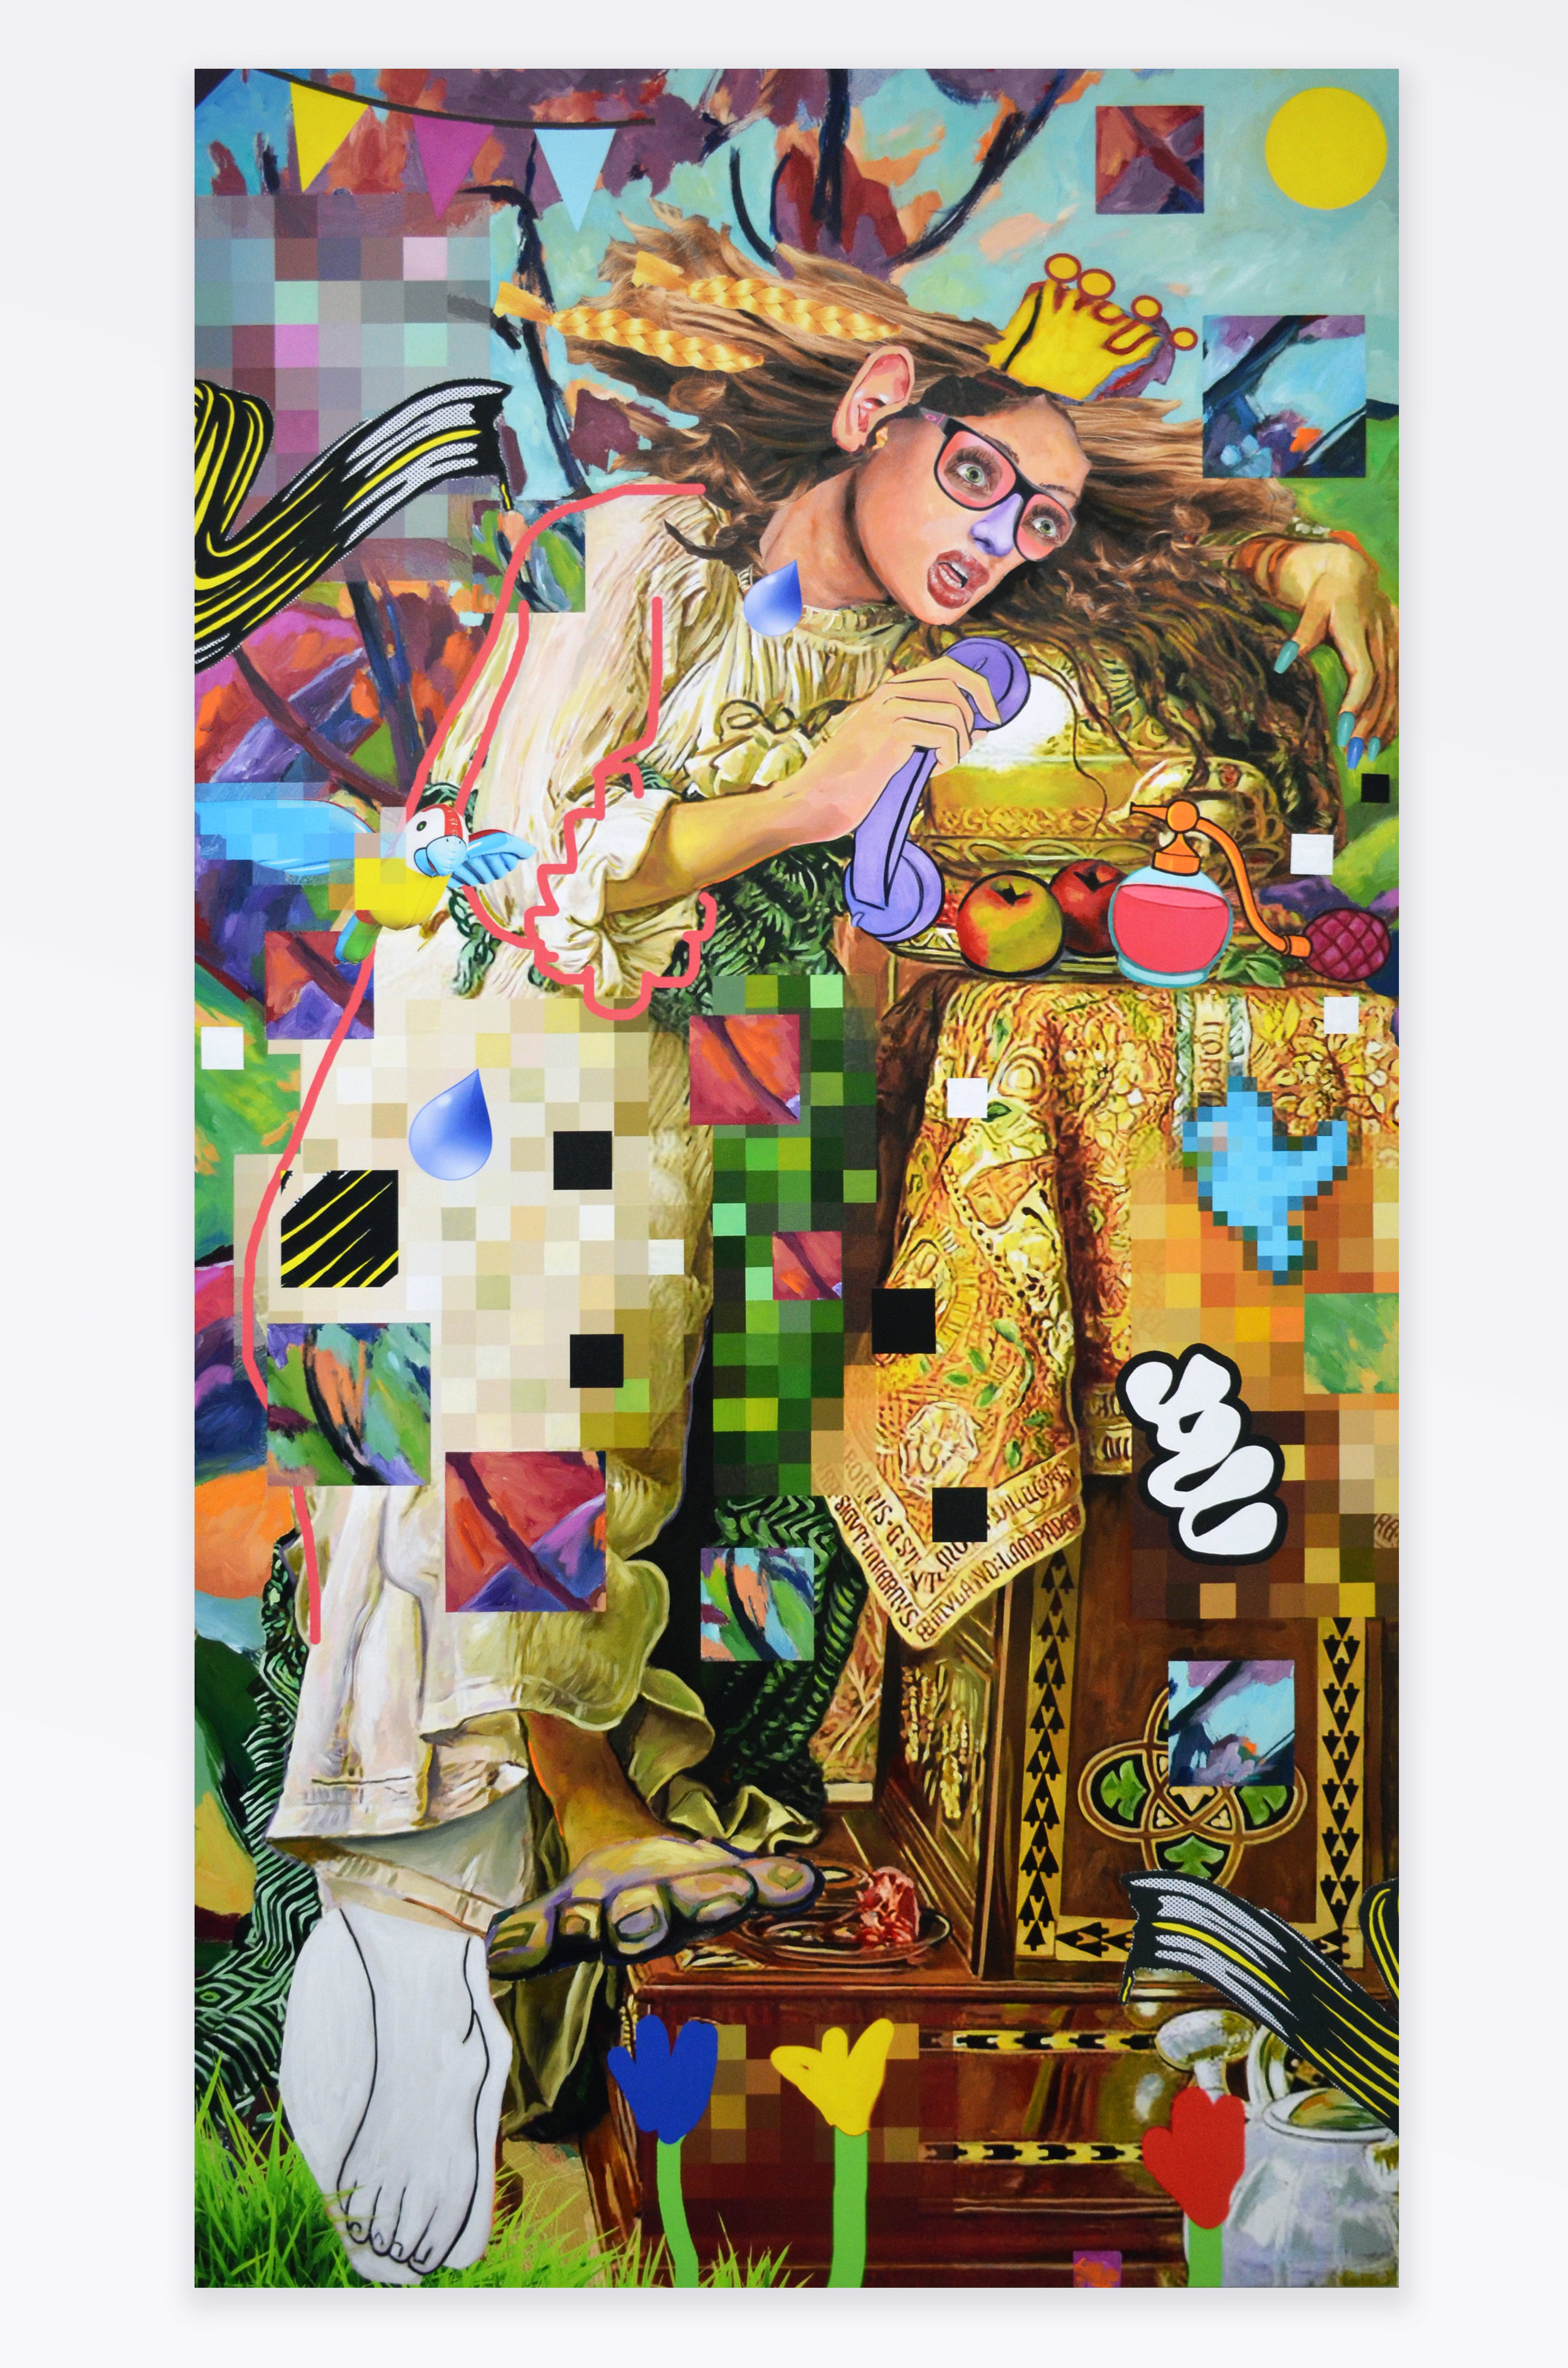 "Allison Zuckerman Jilted Lover, 2018 Acrylic and archival CMYK ink on canvas 96 x 52"" Courtesy Kravets Wehby Gallery"